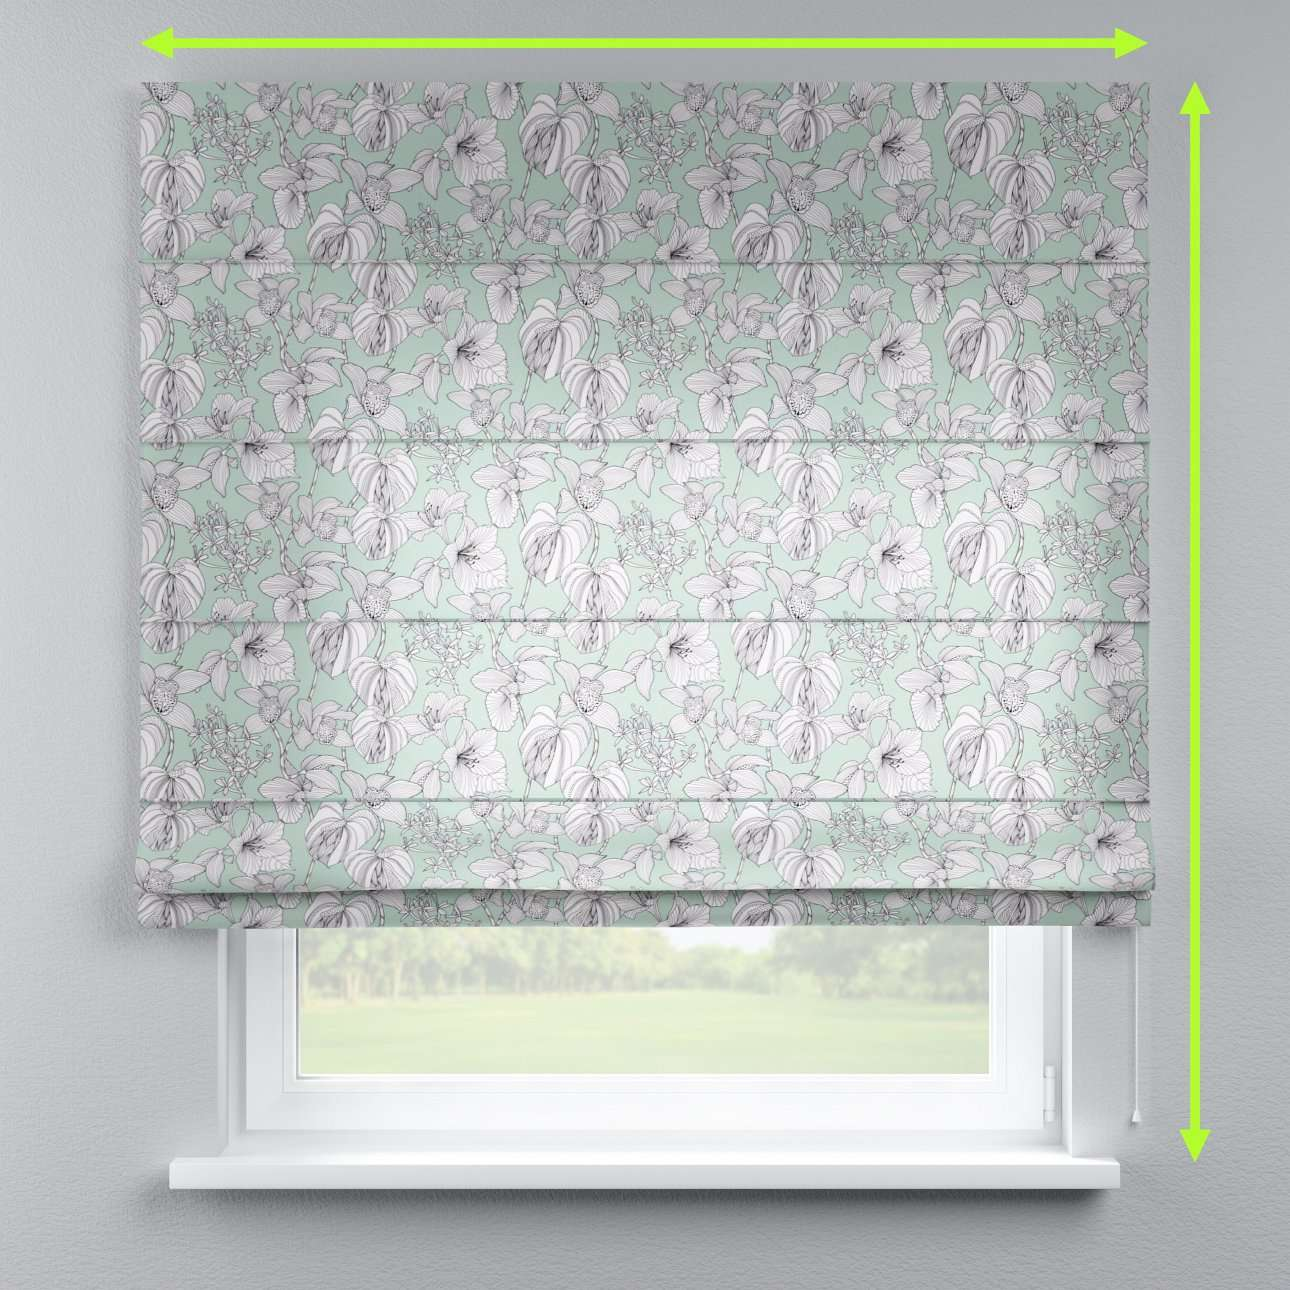 Capri roman blind in collection Brooklyn, fabric: 137-76